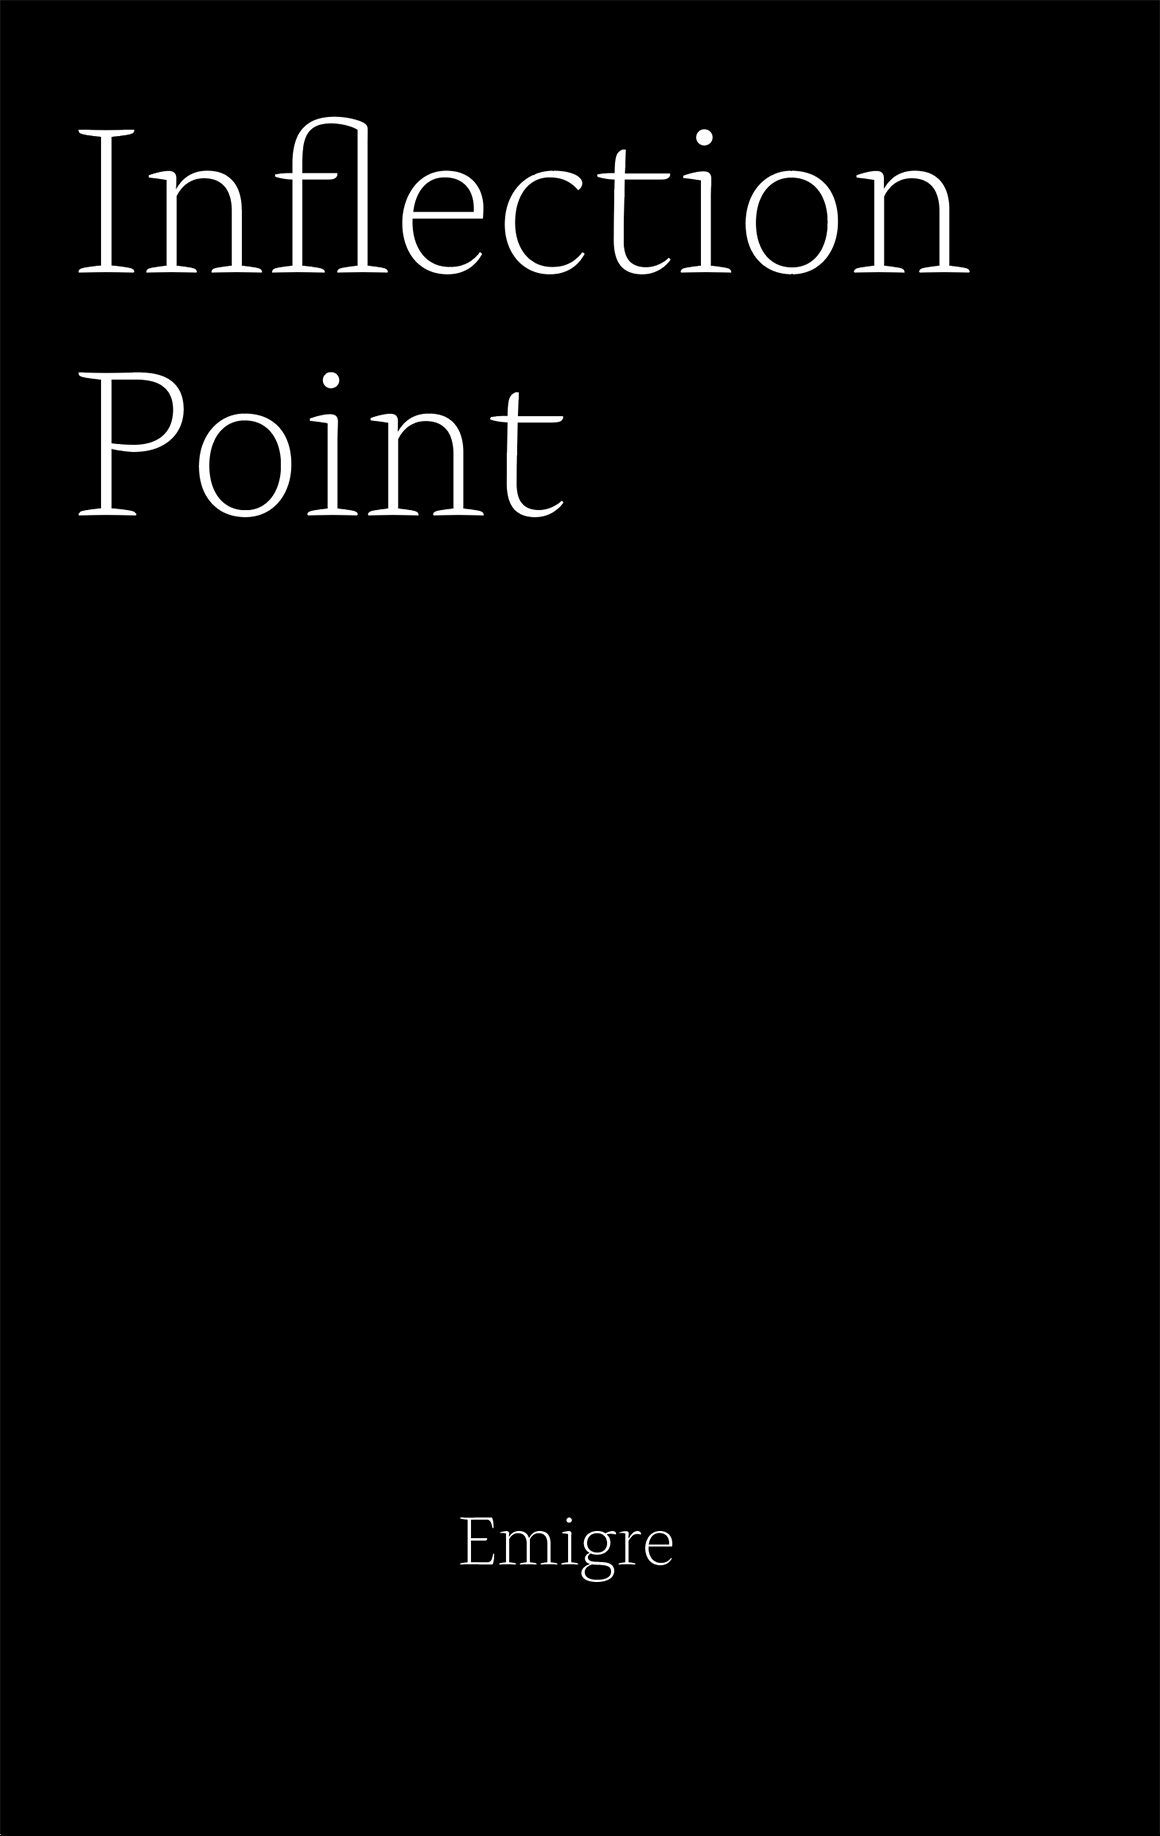 Emigre PDF Cover Inflection Point